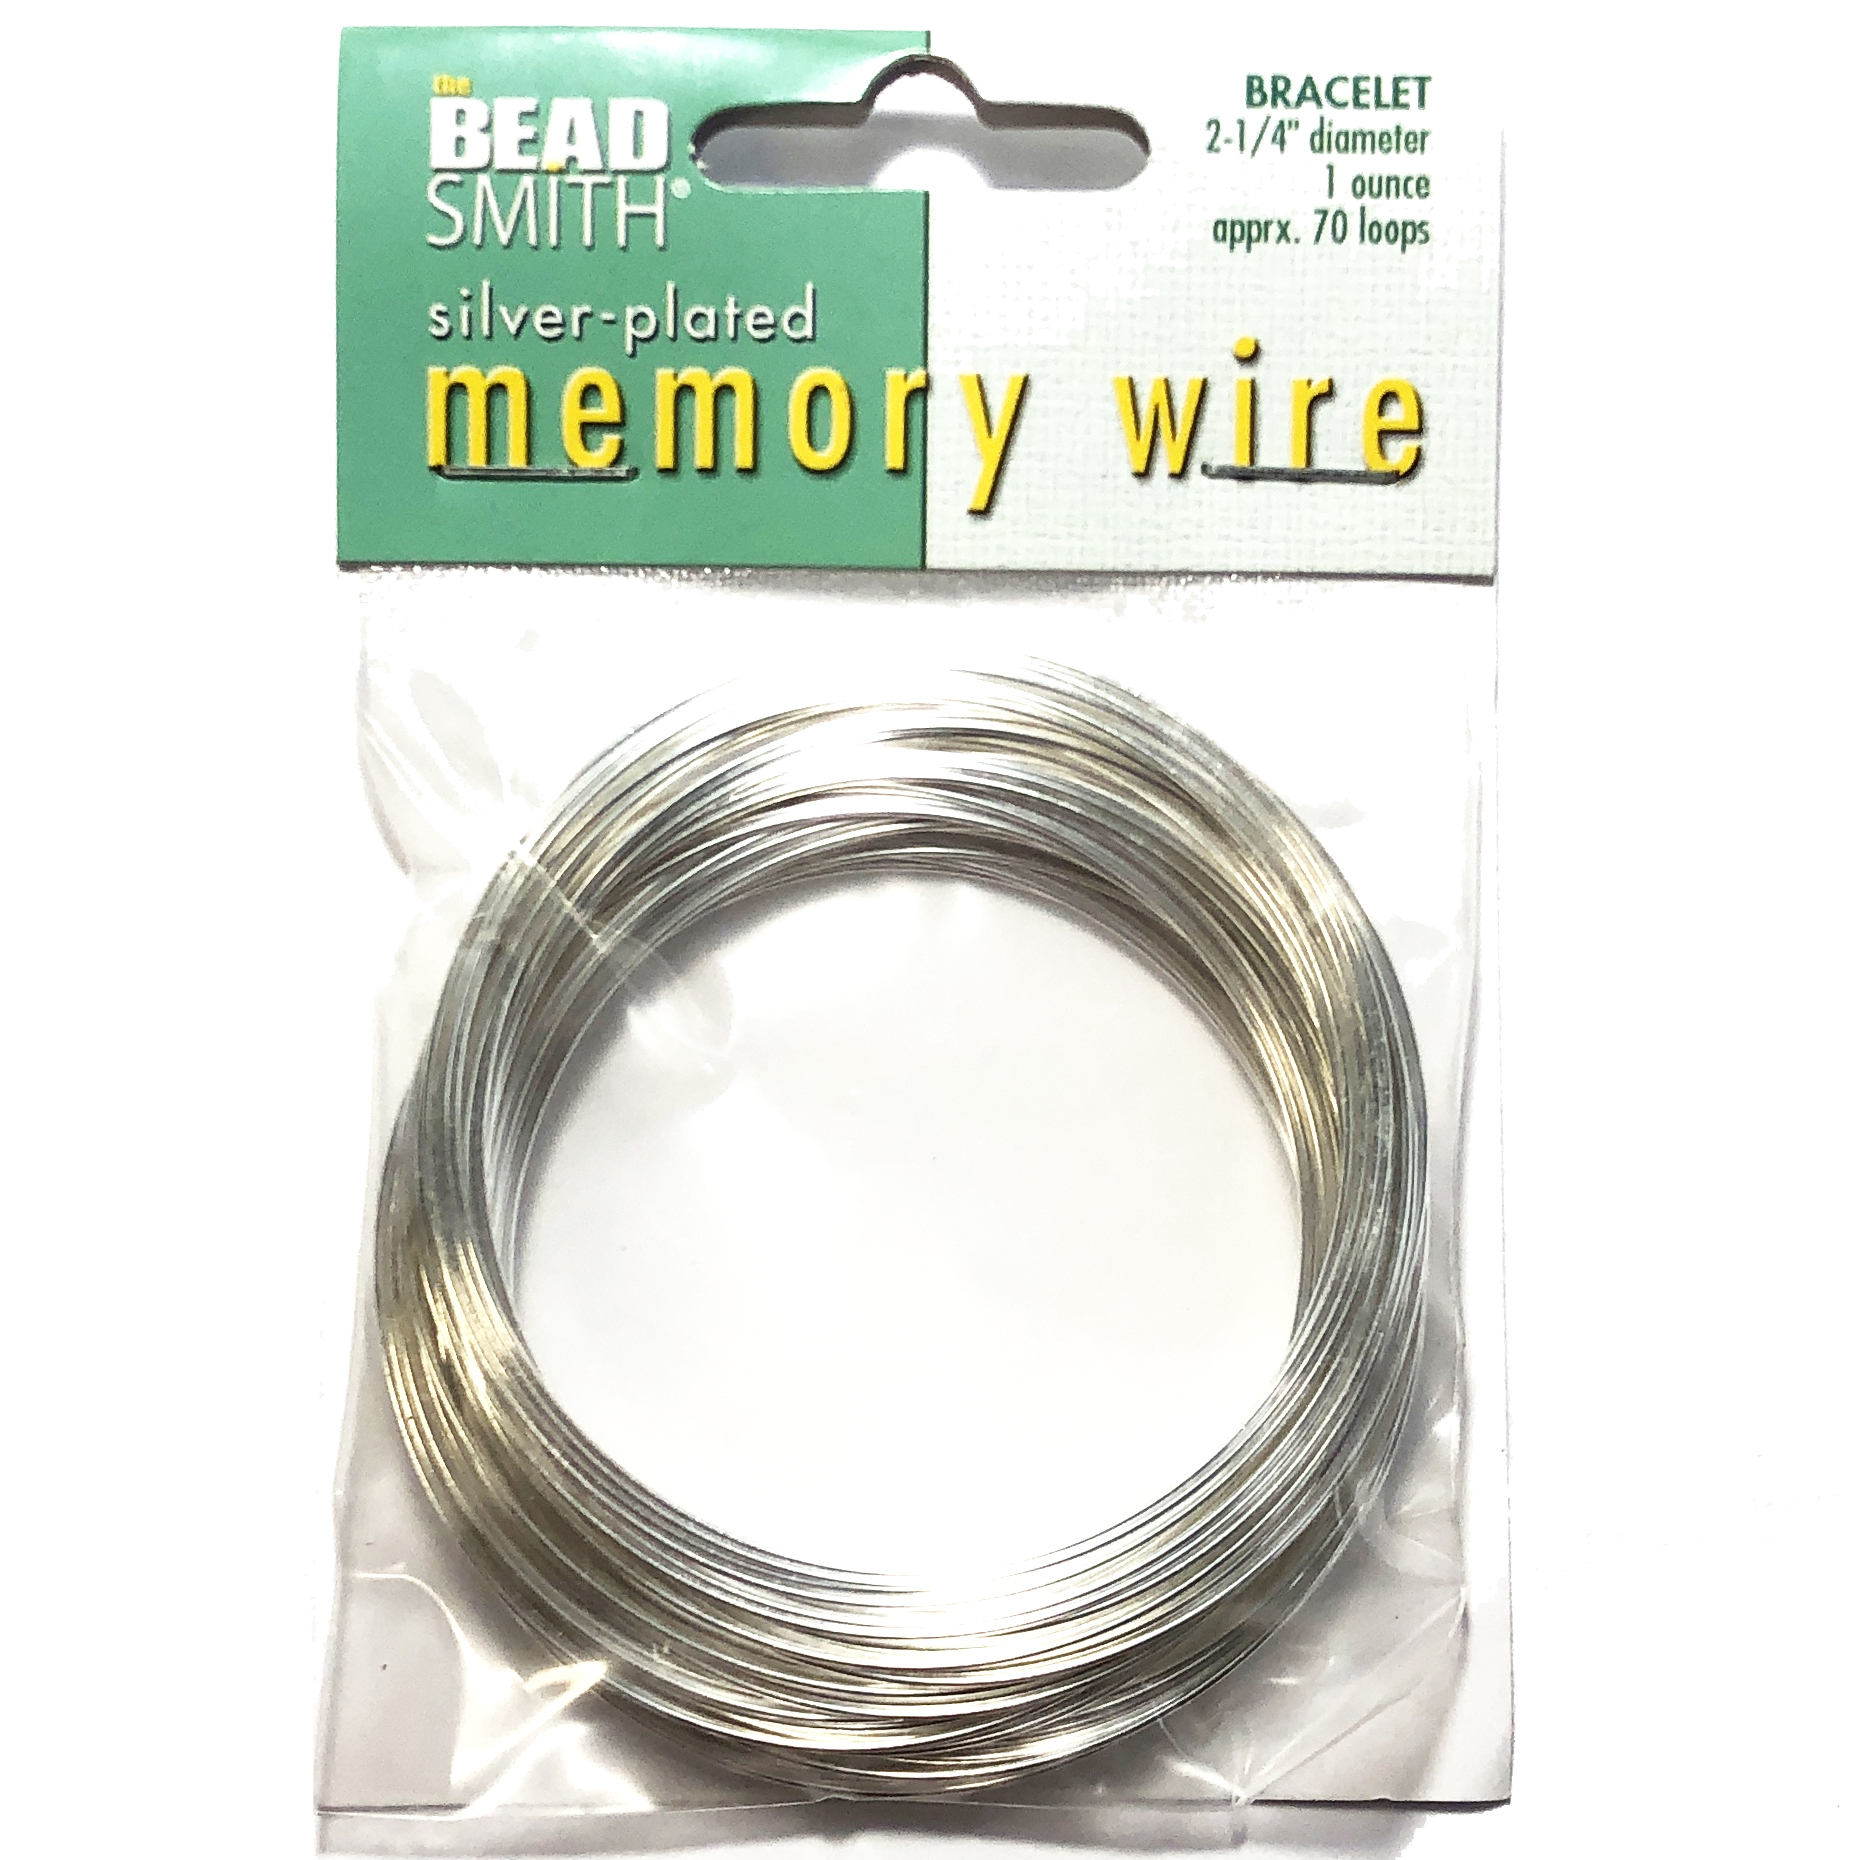 Round Memory Wire, Silver Plate, 09999, 2.25 inch, bracelet wire, jewelry wire, craft wire, jewelry making supplies, stainless steel memory wire, 70 loop wire, round wire